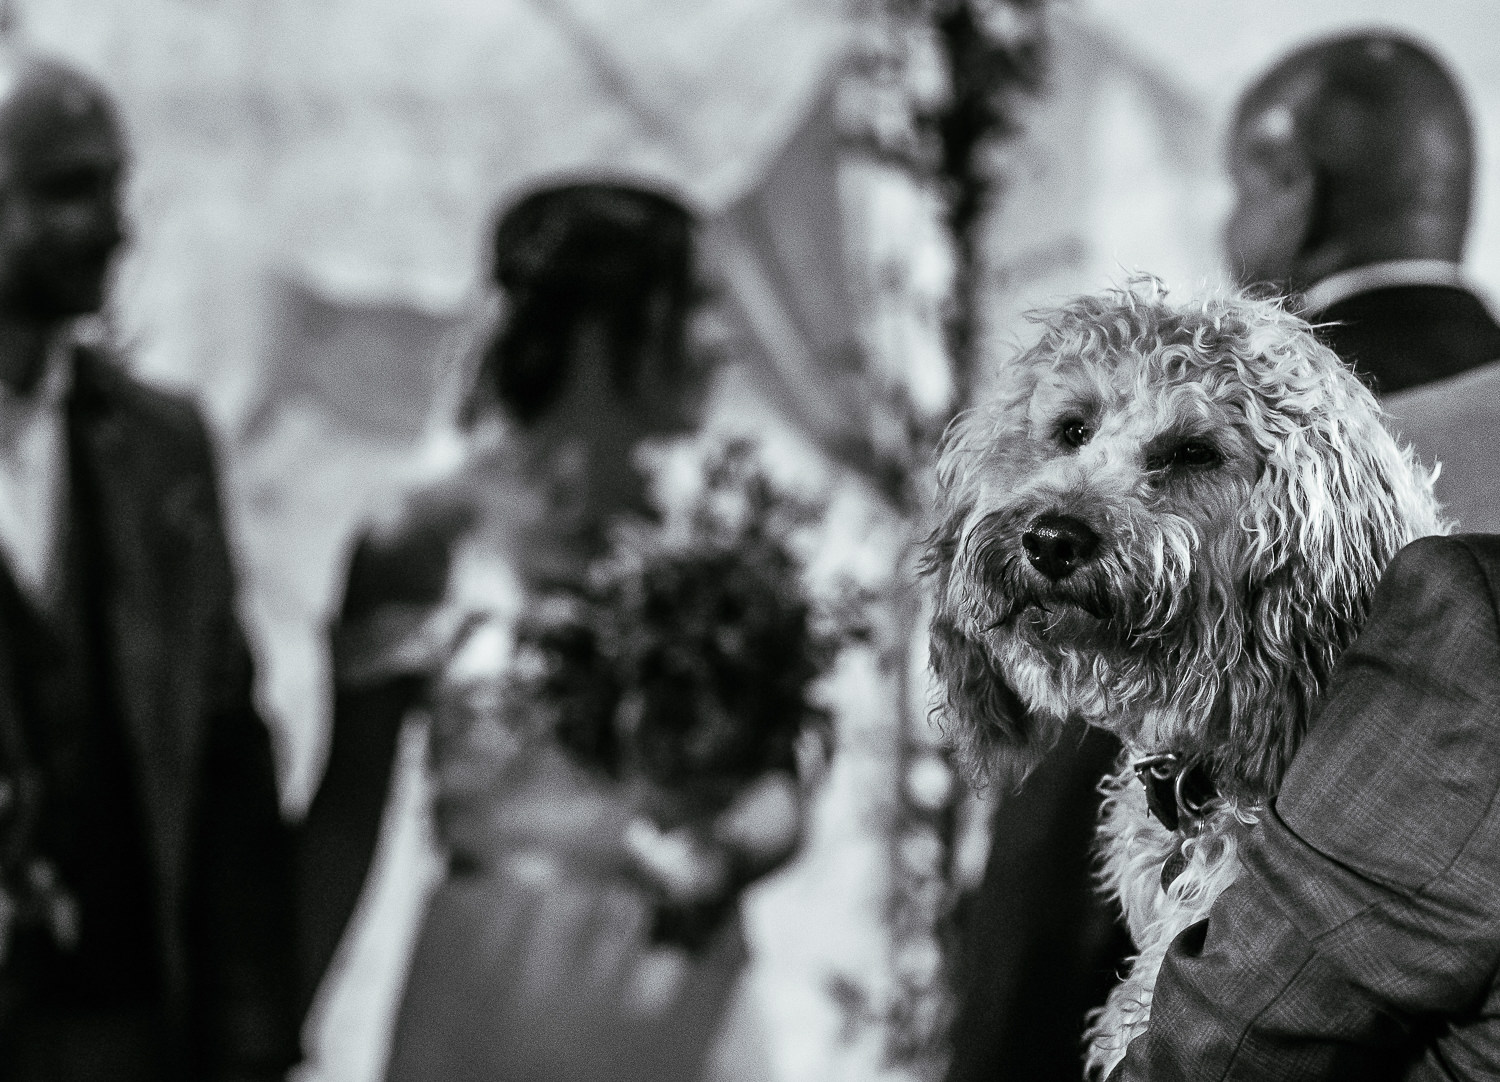 Dog with bride and groom in background